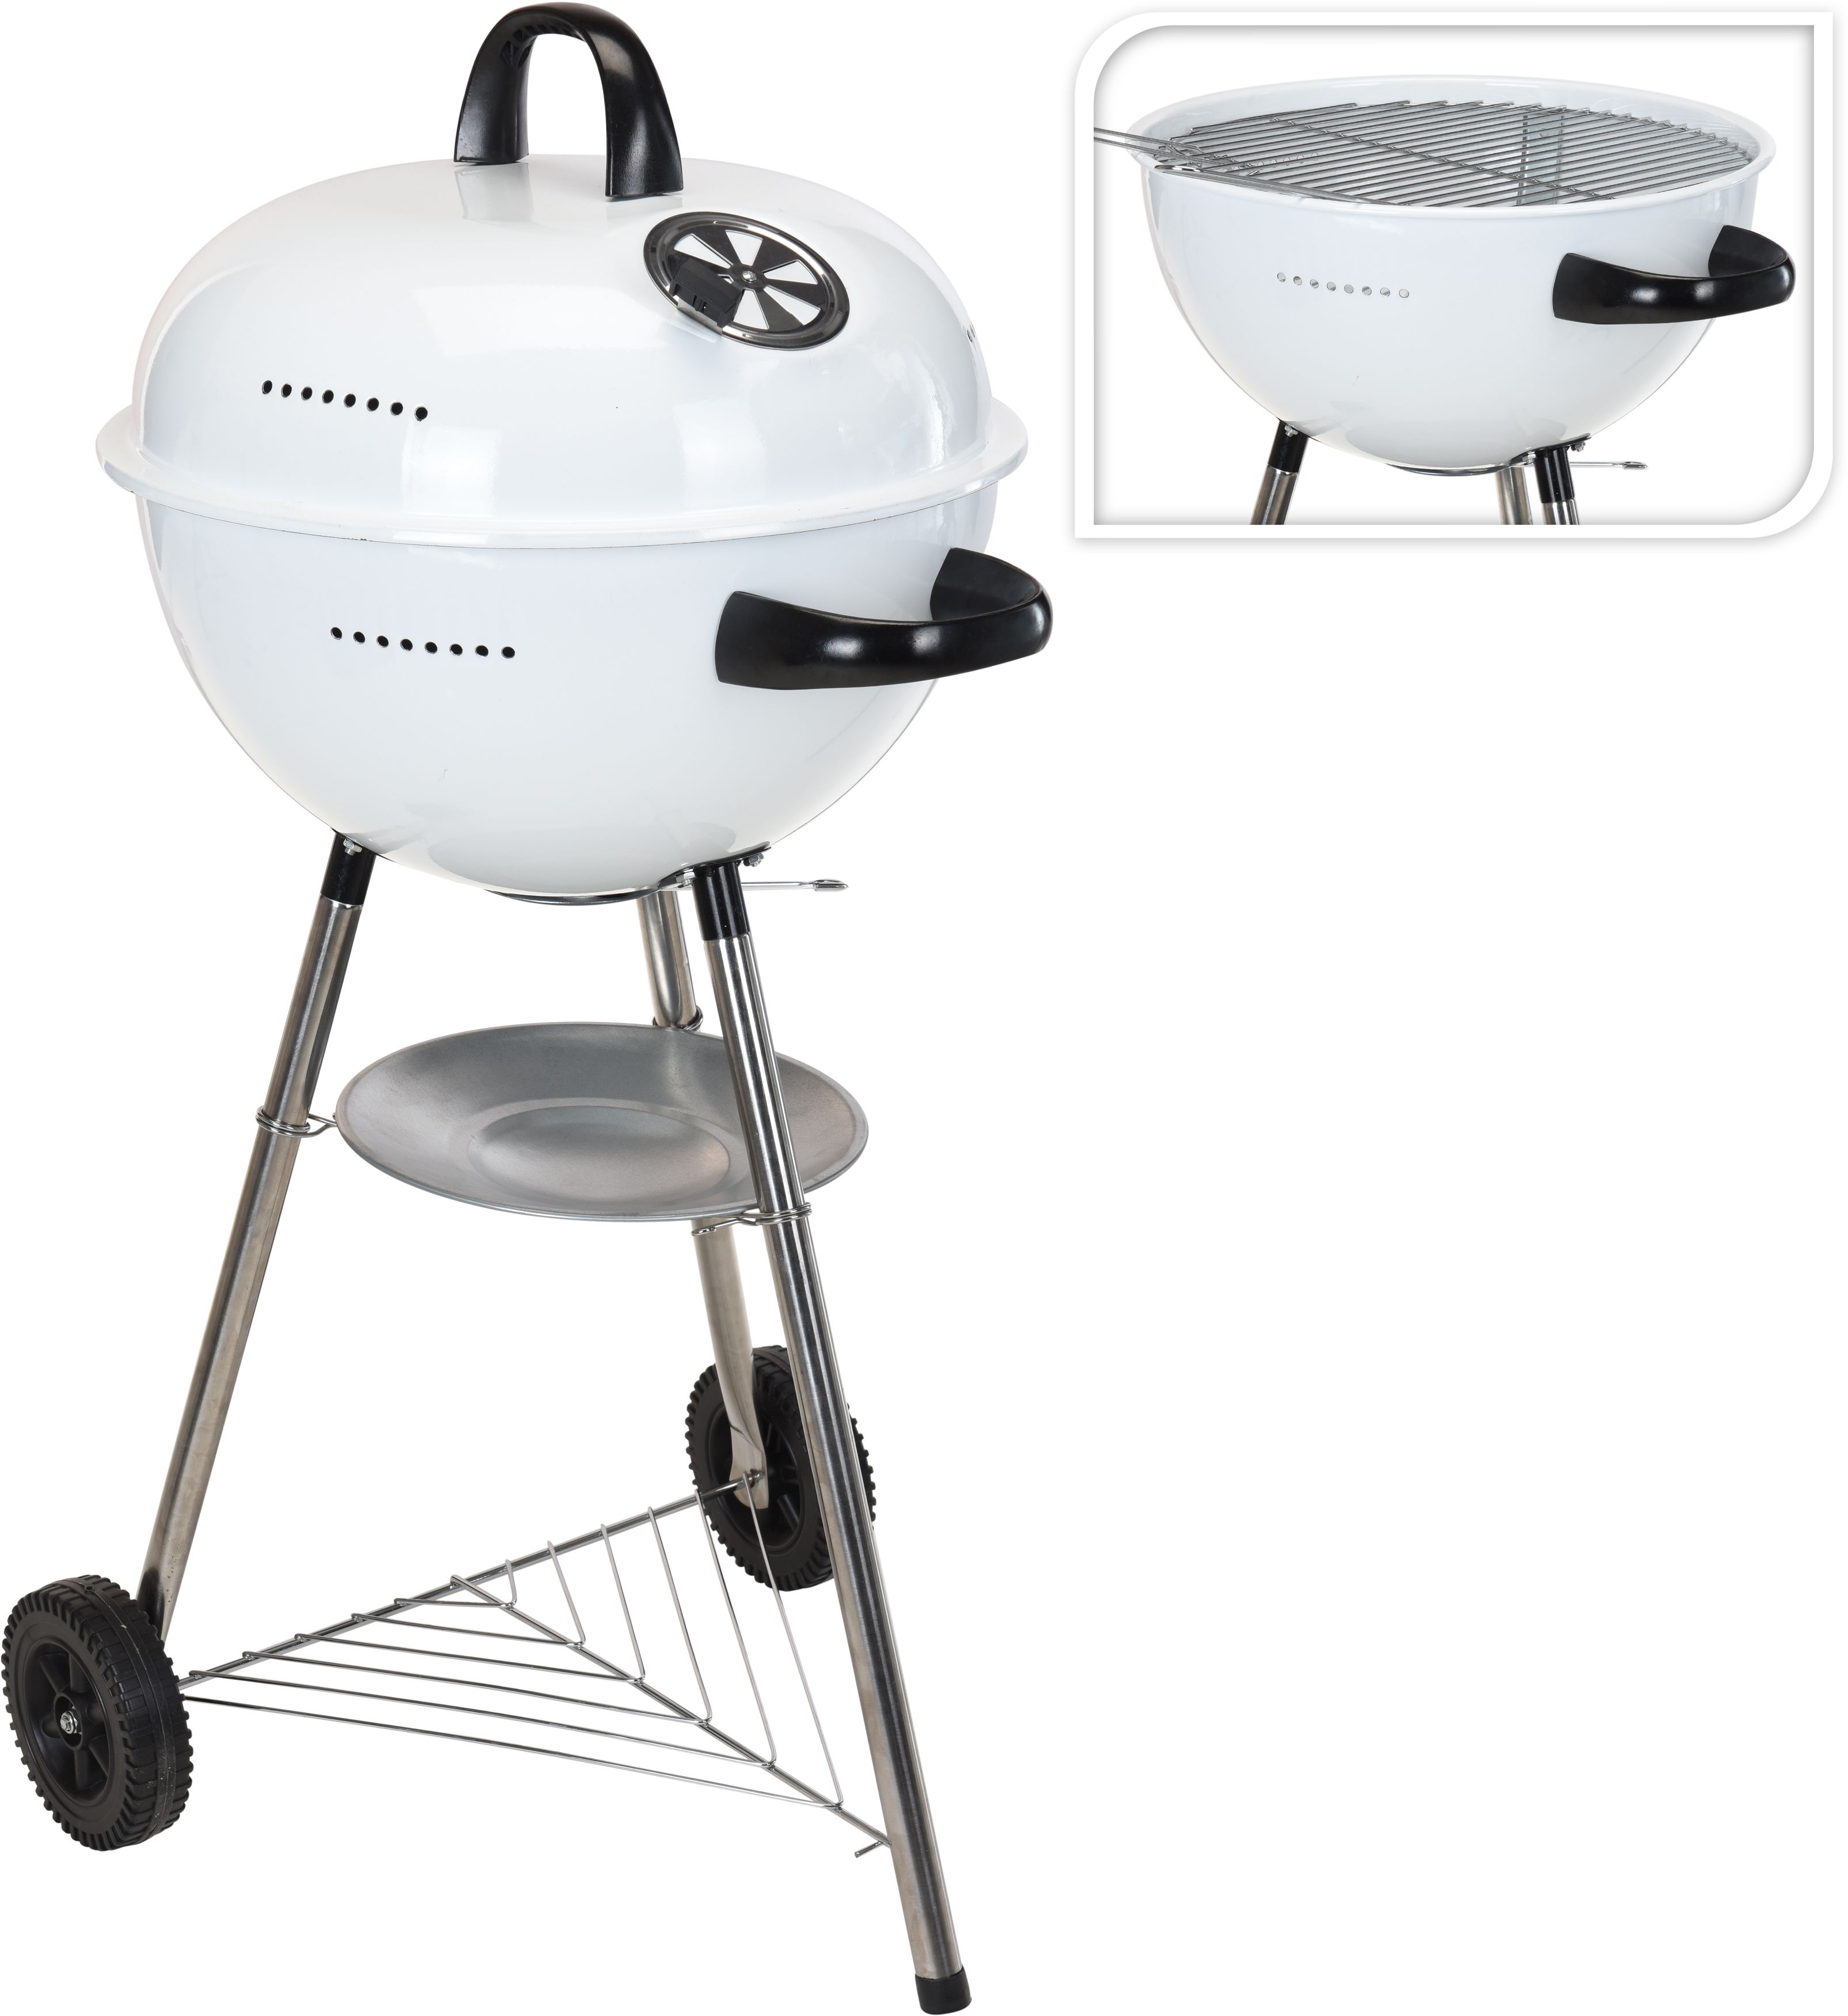 BBQ Barbecue Bolvormig 48cm Wit